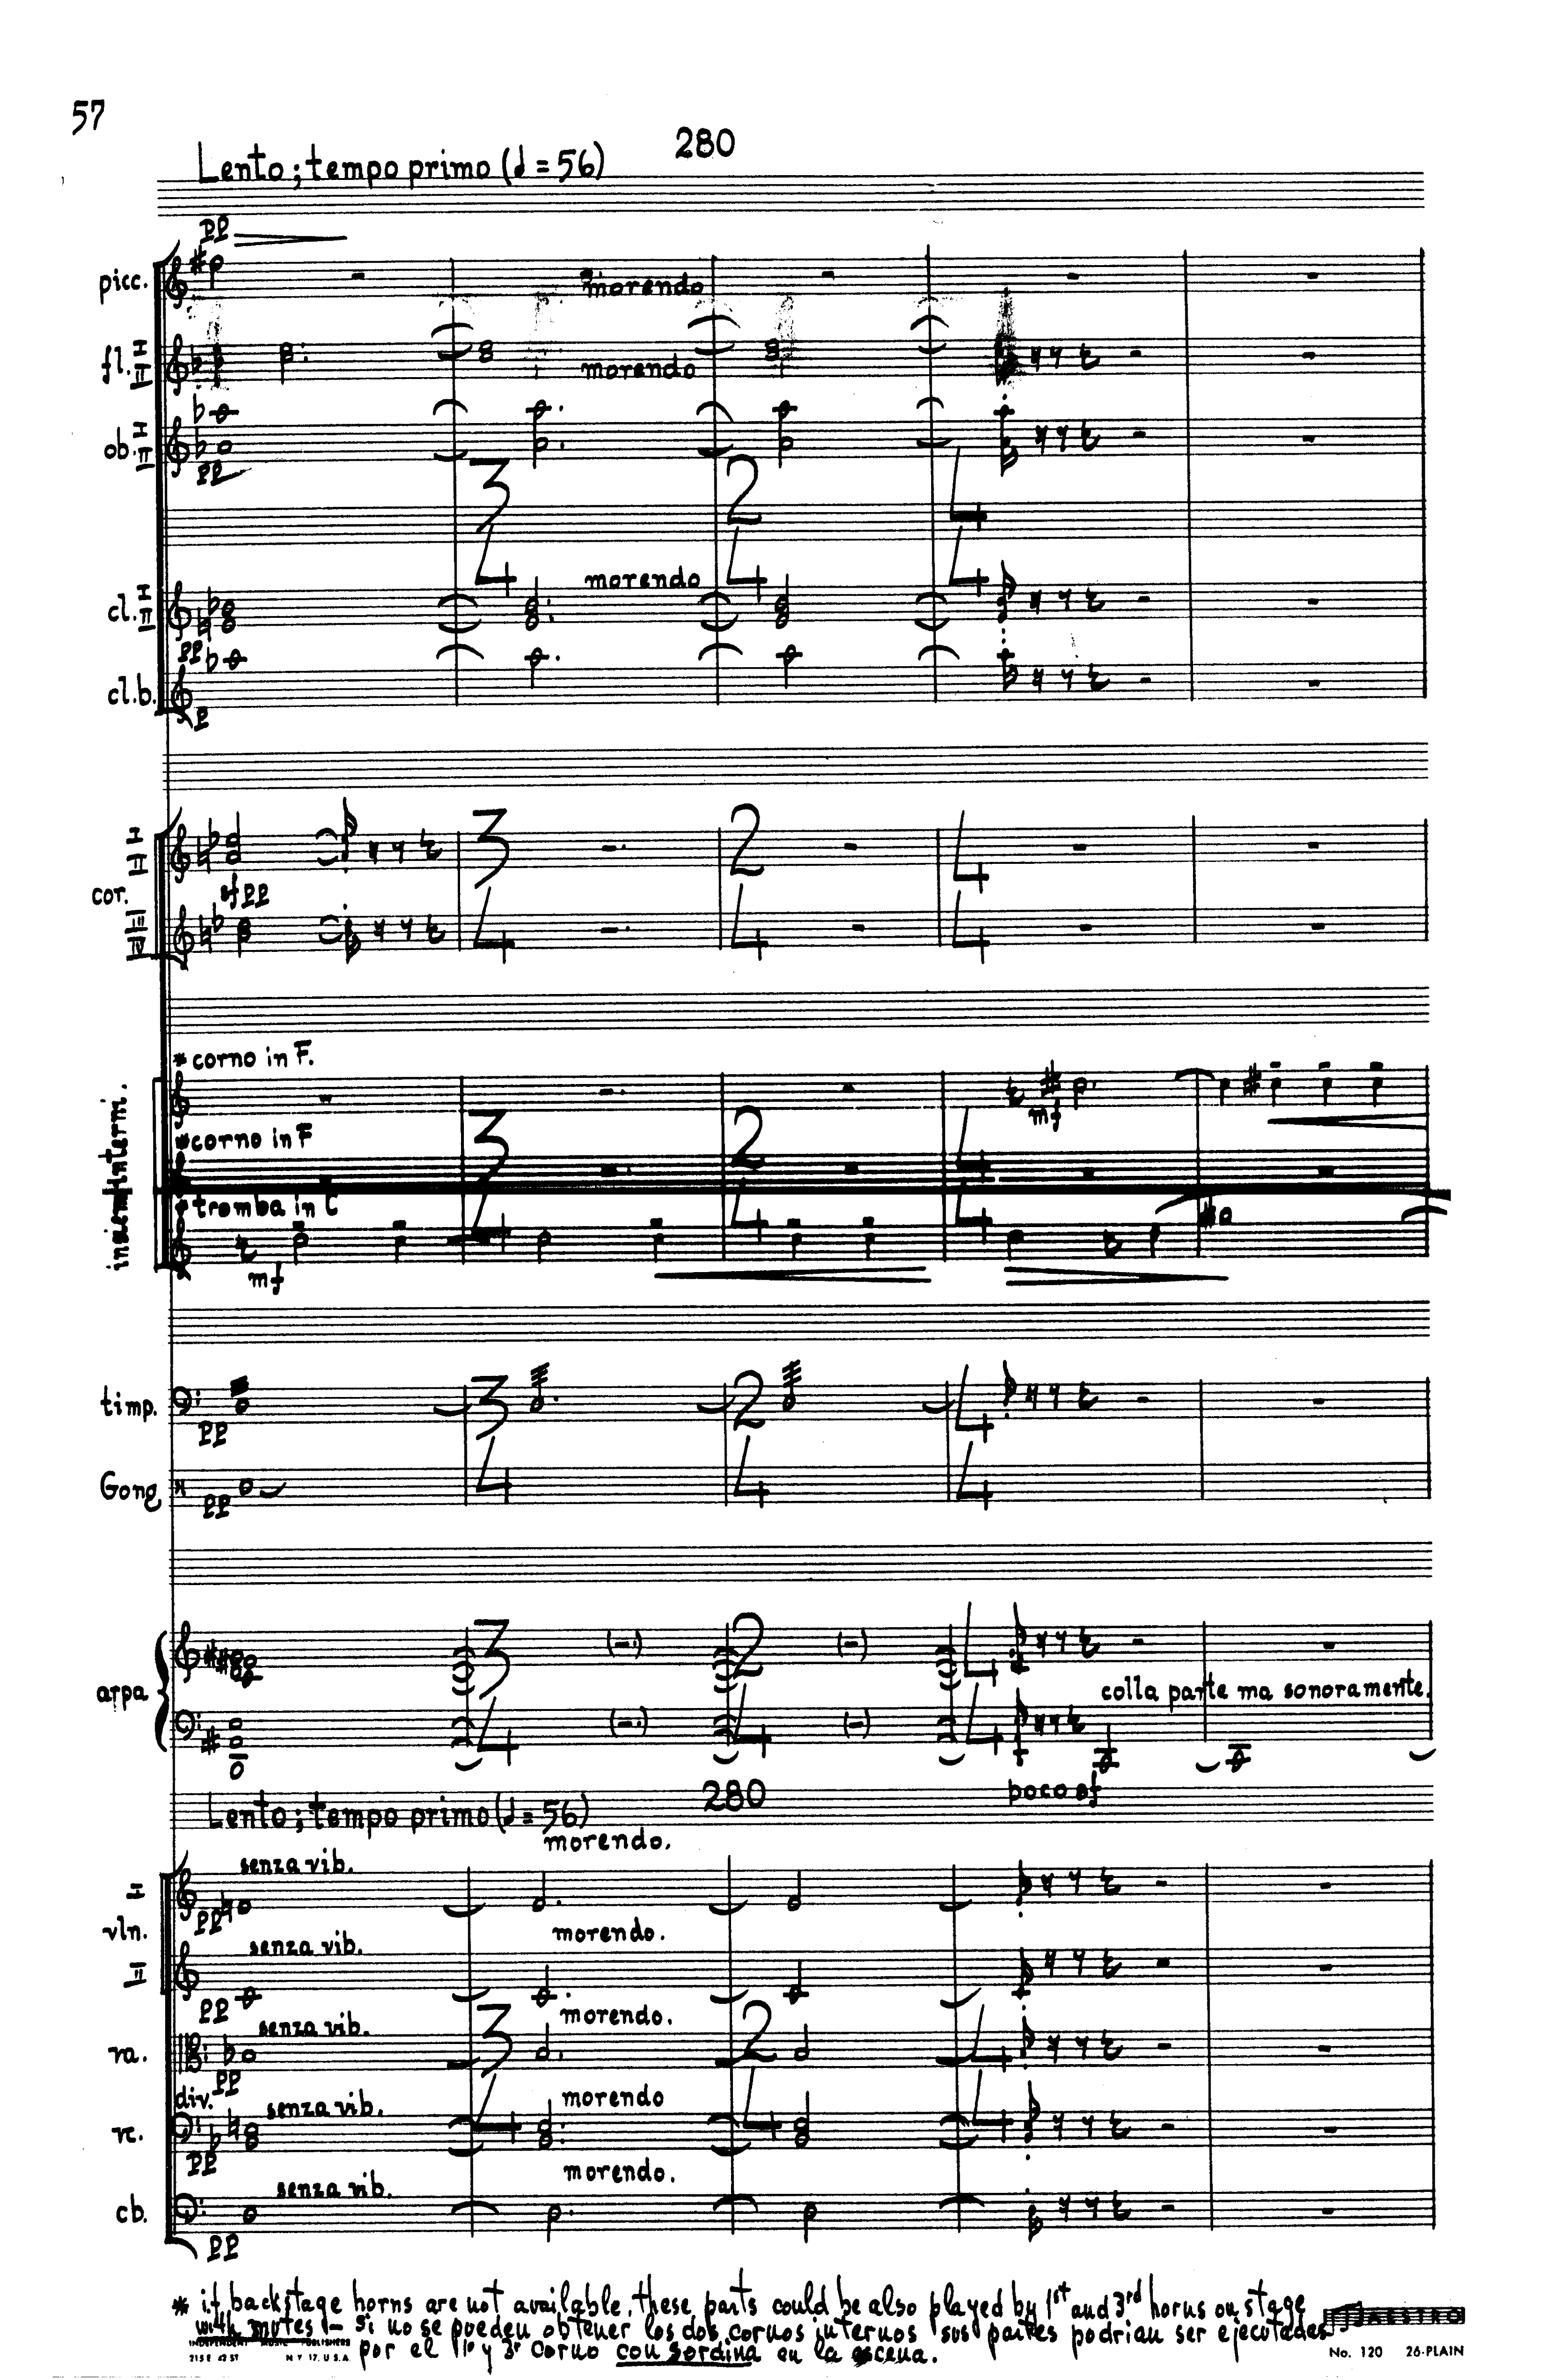 Score excerpt from Orrego-Salas's 4th Symphony